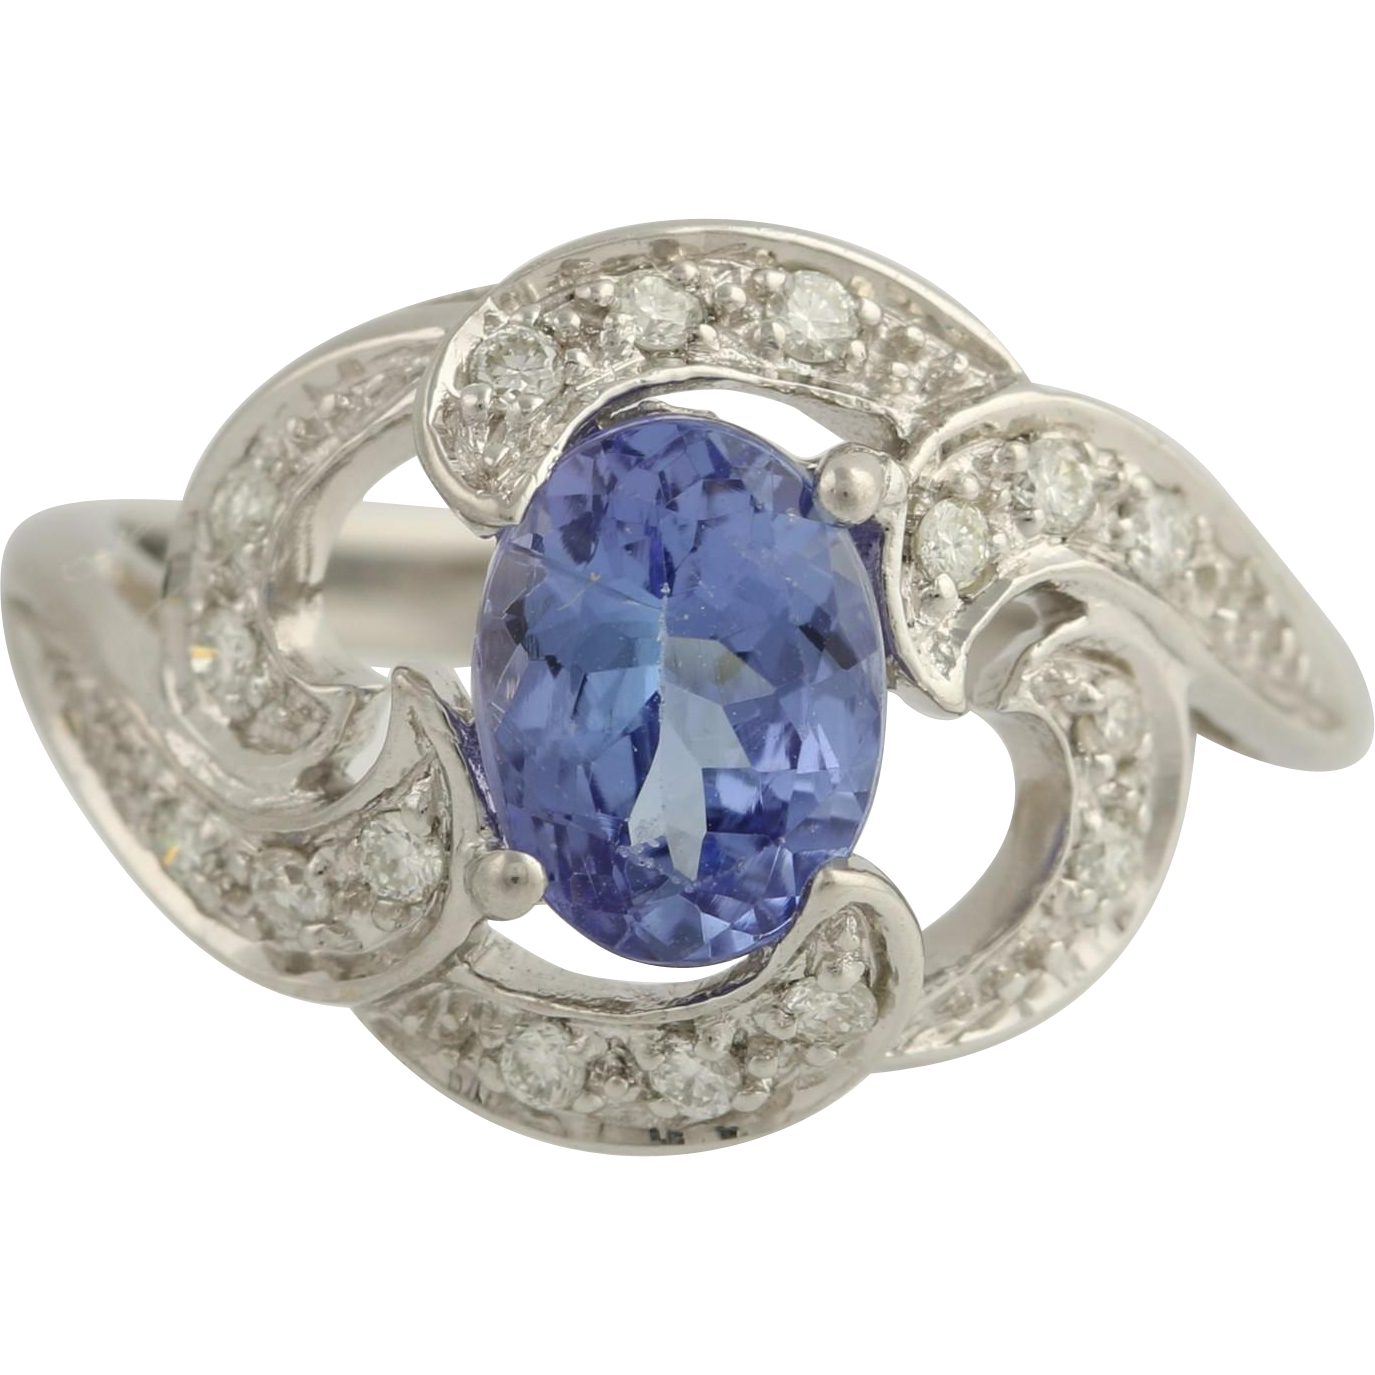 Tanzanite & Diamond Cocktail Ring - 18k White Gold Oval Swirl Genuine 1.63ctw